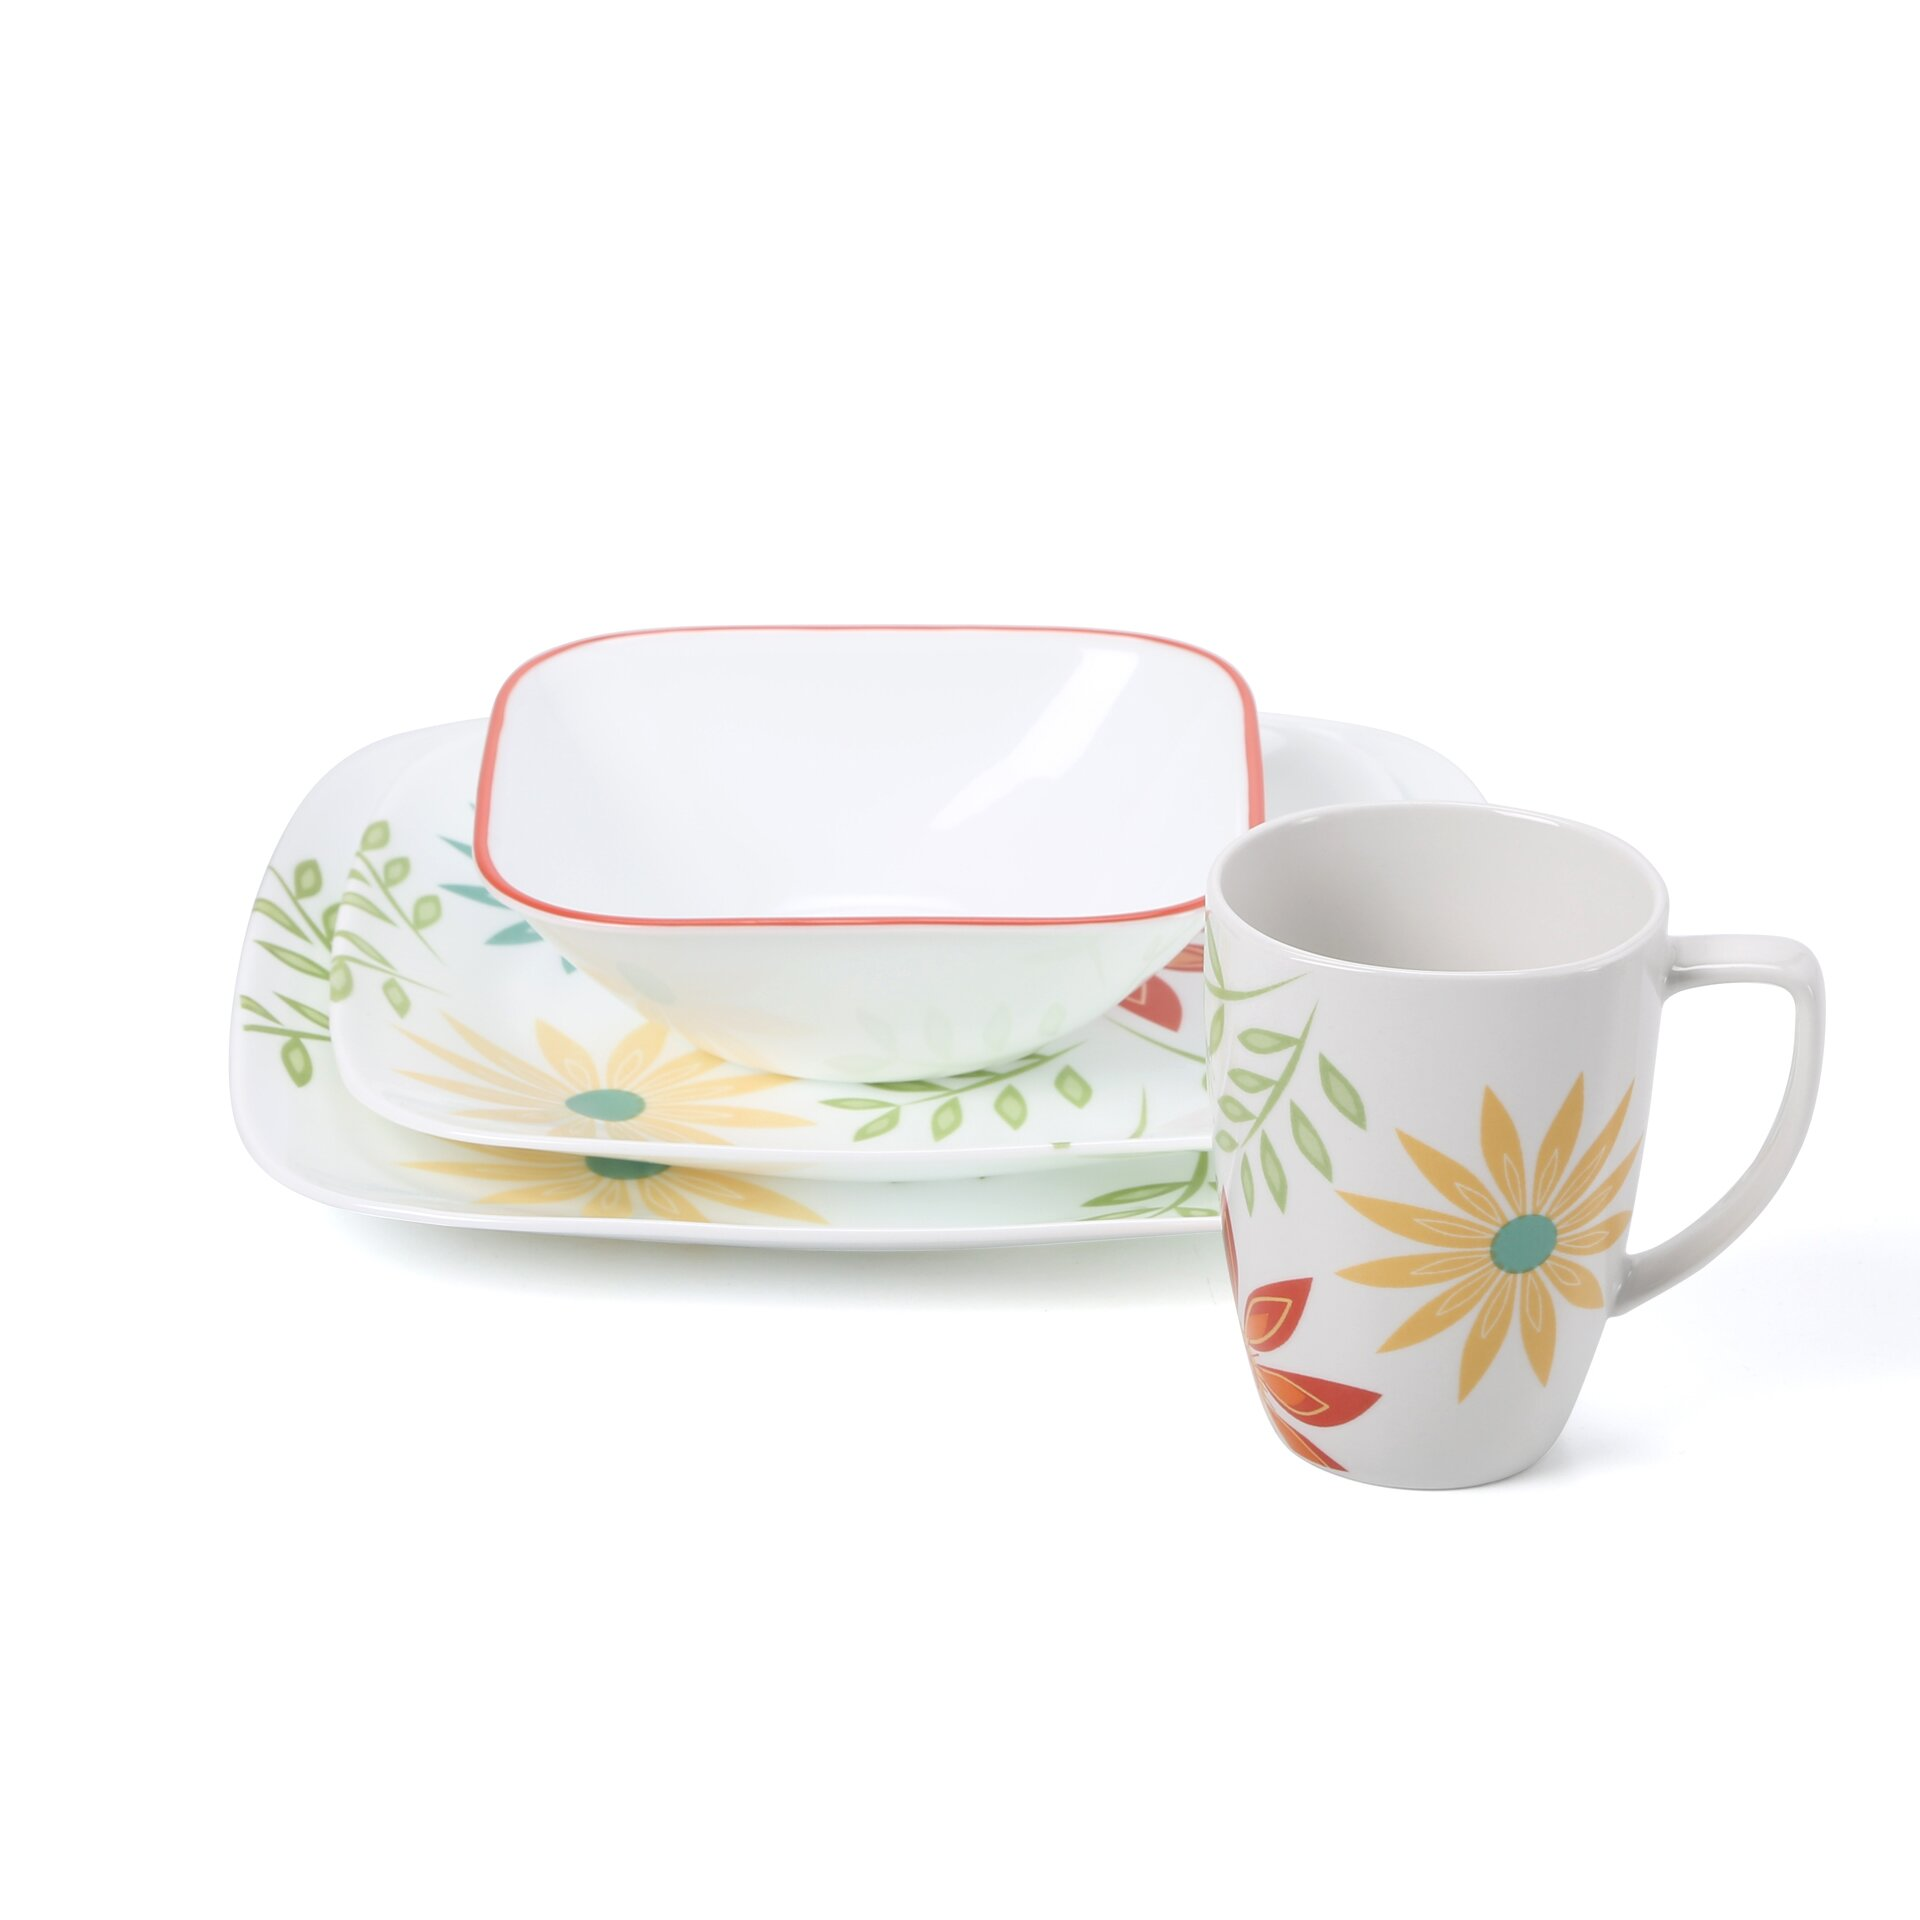 corelle happy days 16 piece dinnerware set reviews wayfair